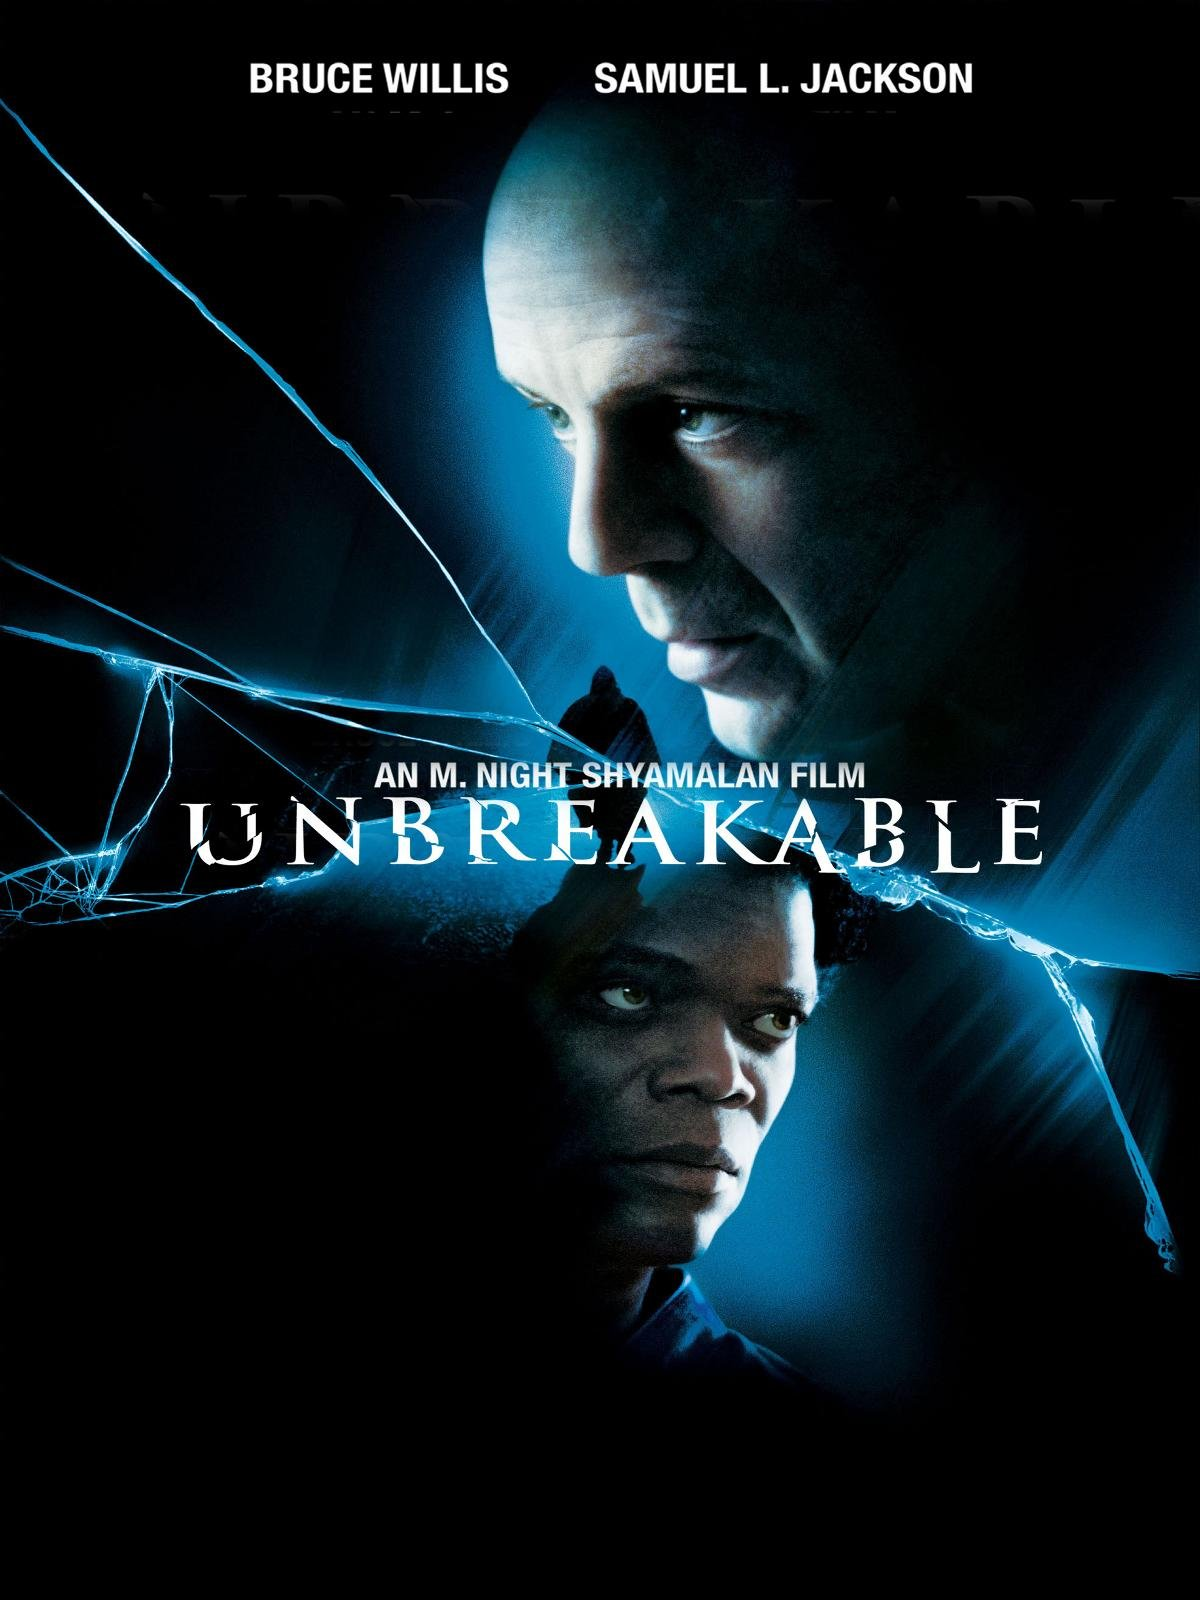 Unbreakable (2000) - Directed by: M. Night ShyamalanStarring: Bruce Willis, Samuel L. Jackson, Robin WrightRated: Running Time: 1 h 46 mTMM Score: 3.5 stars out of 5STRENGTHS: Writing, Cinematography, SubtletyWEAKNESSES: Moments of Melodrama, Heavy-Handed Directing